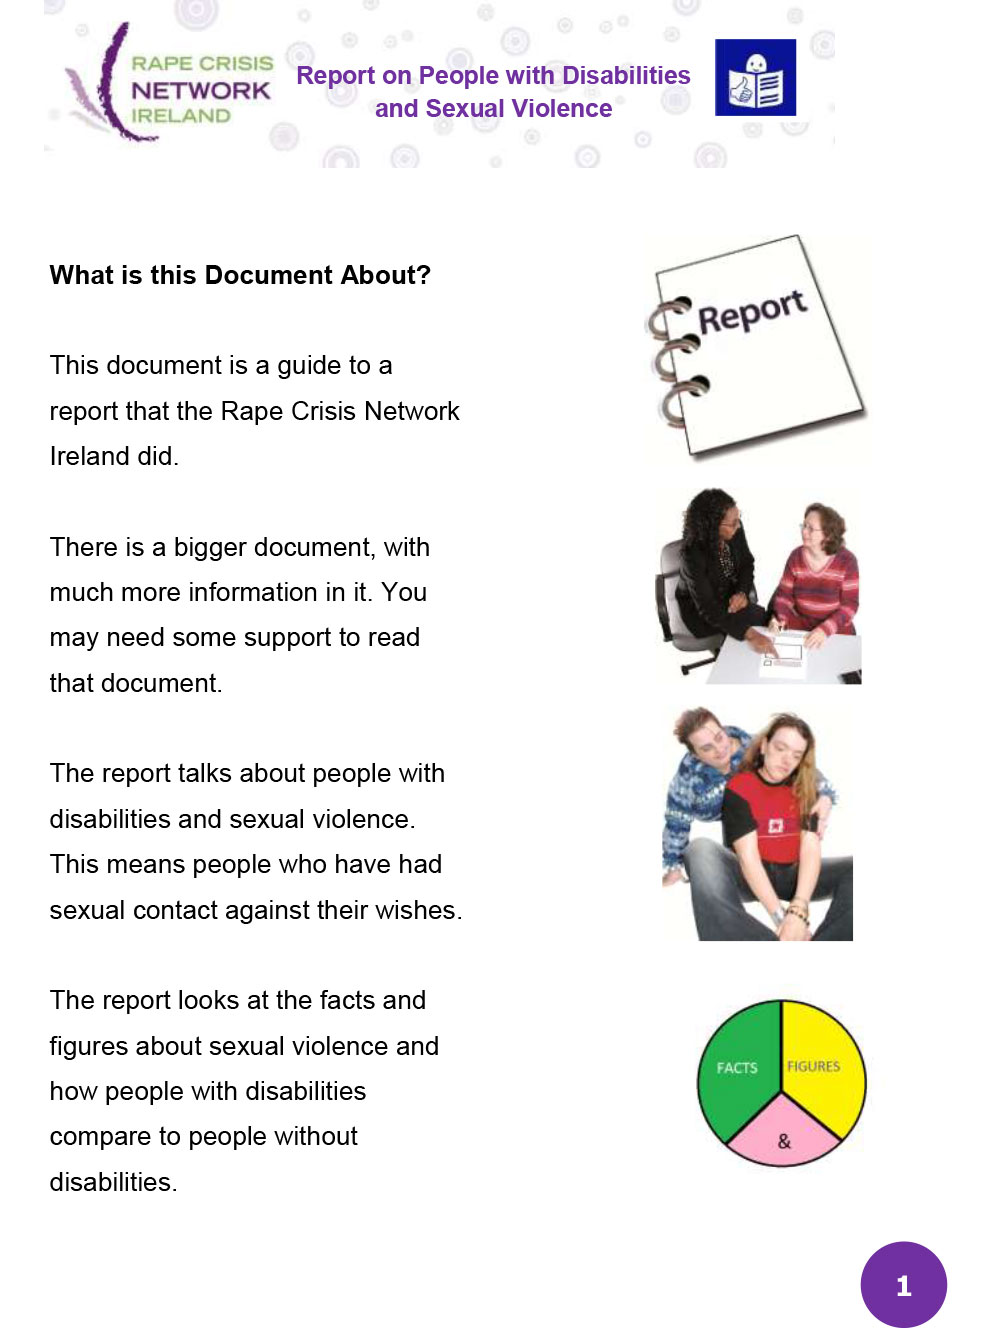 Guide to the Report on People with Disabilities and Sexual Violence